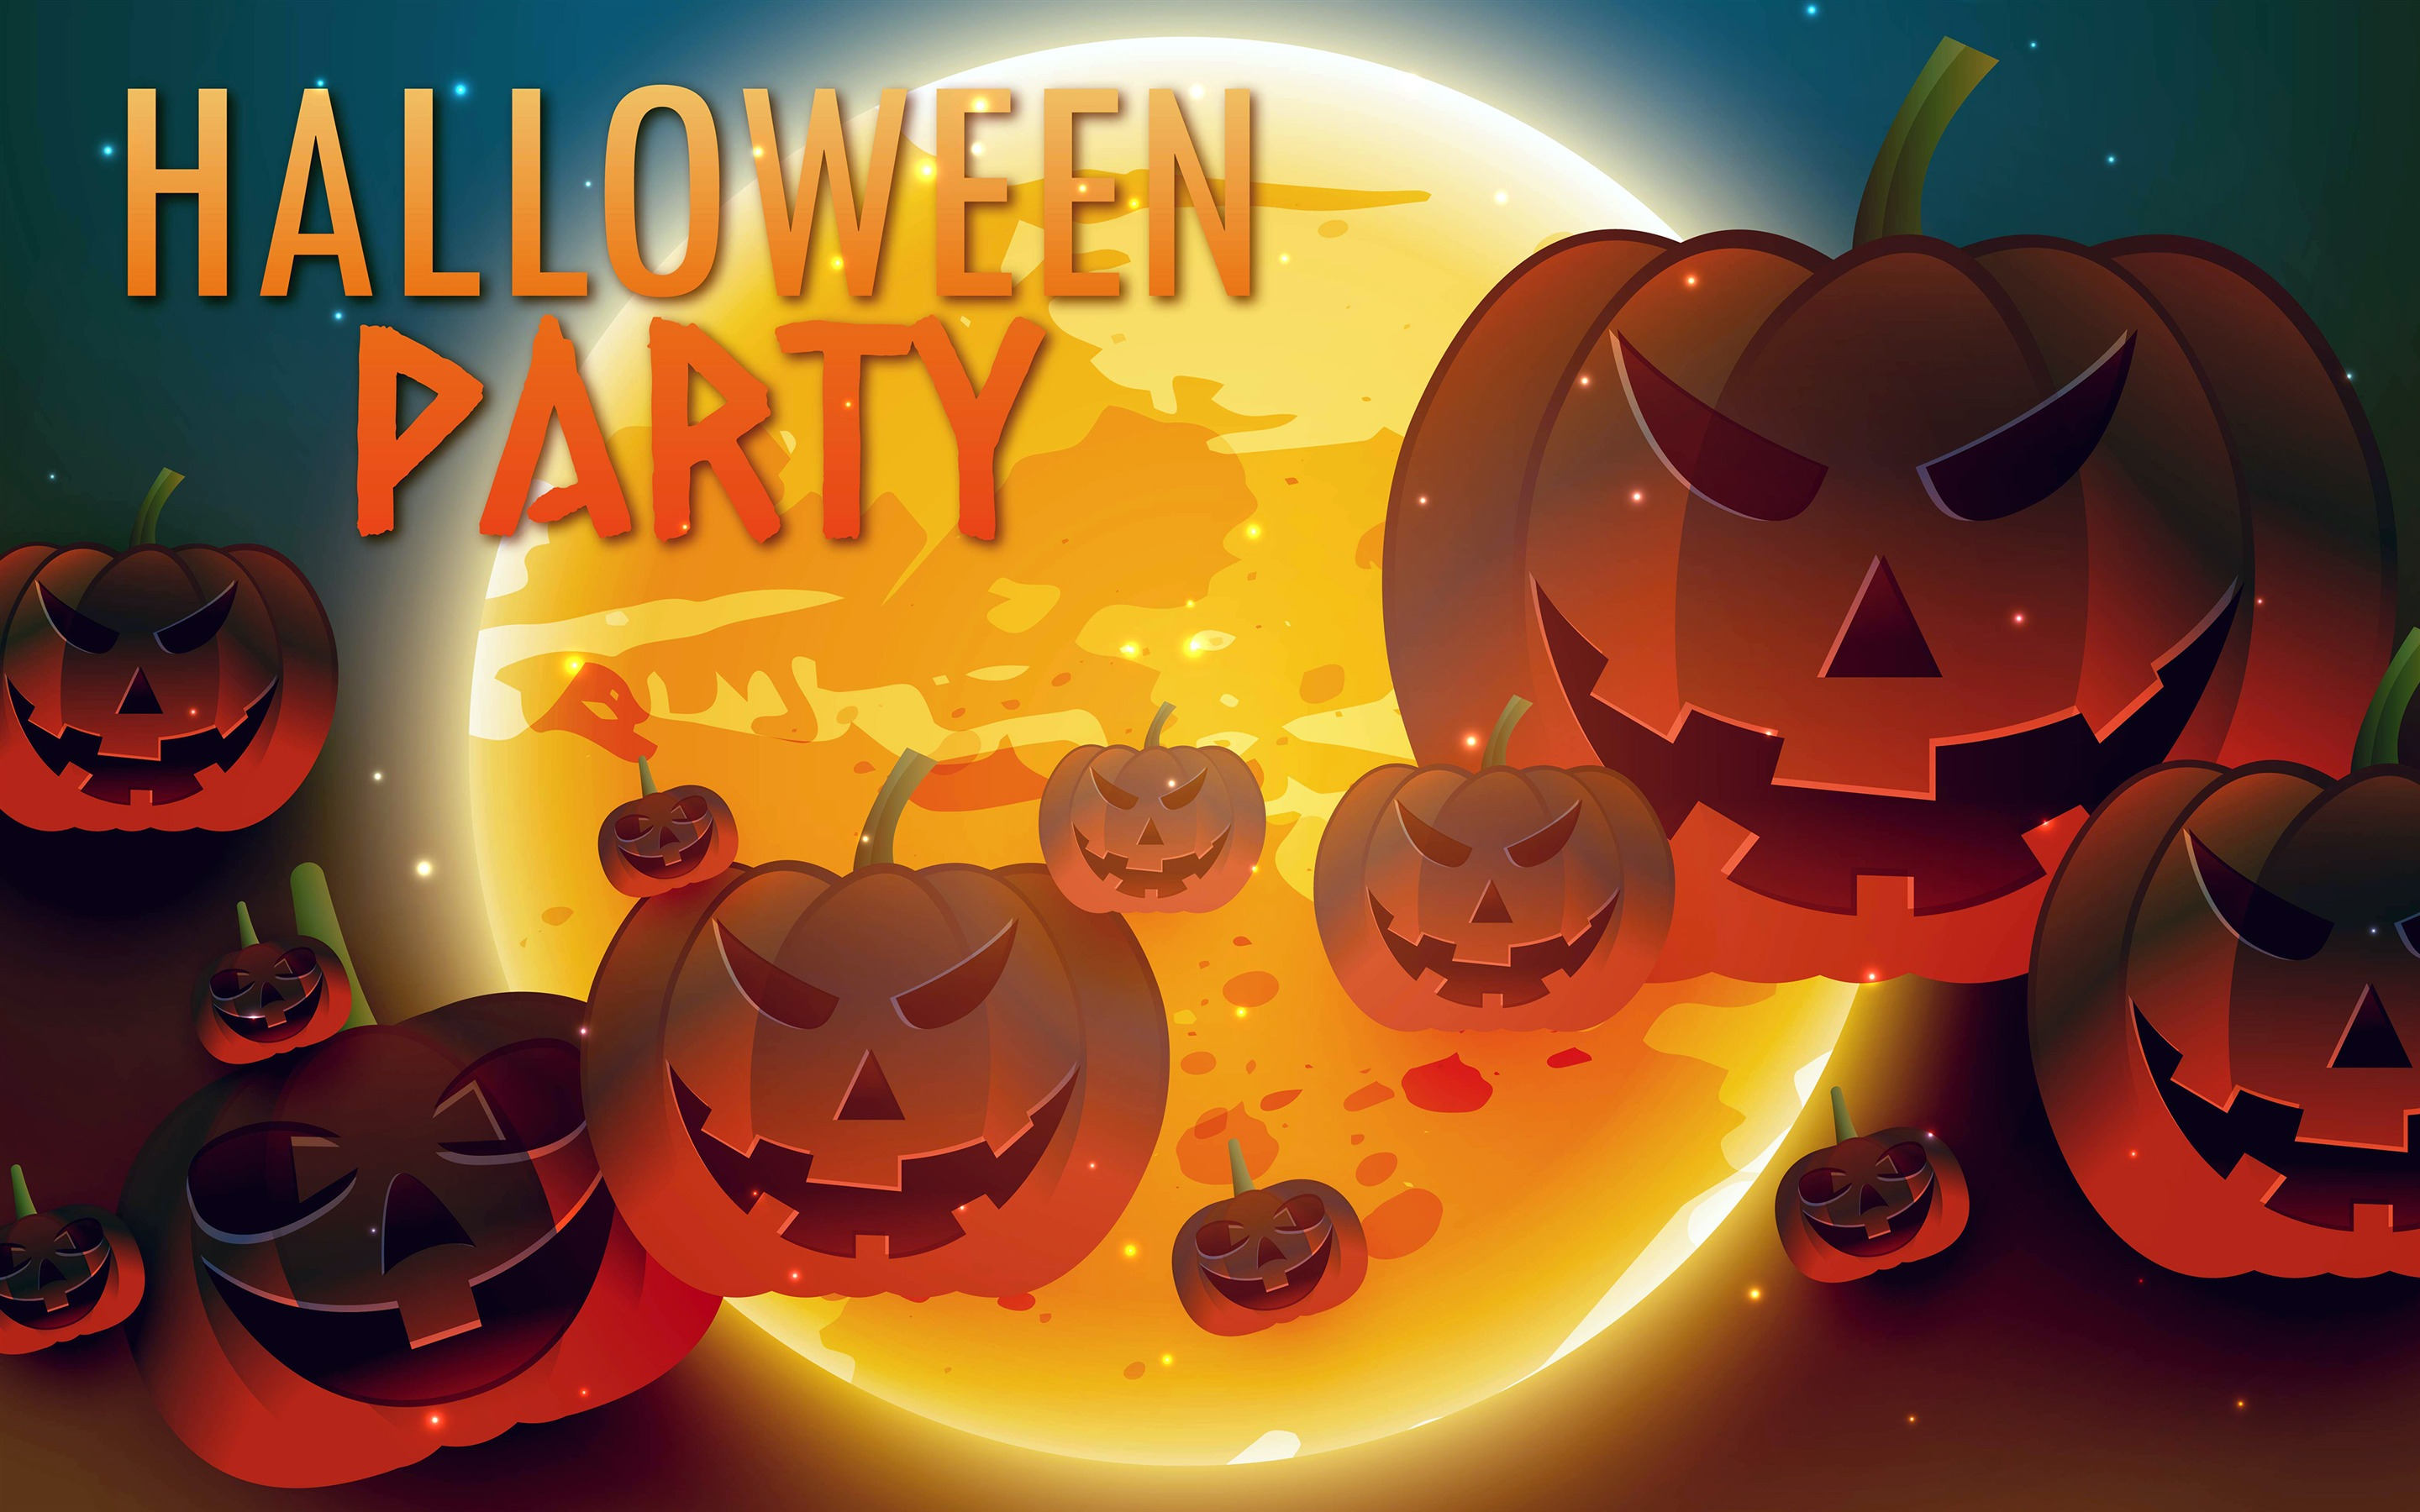 Happy Halloween Party Retina Wallpaper 2880x1800